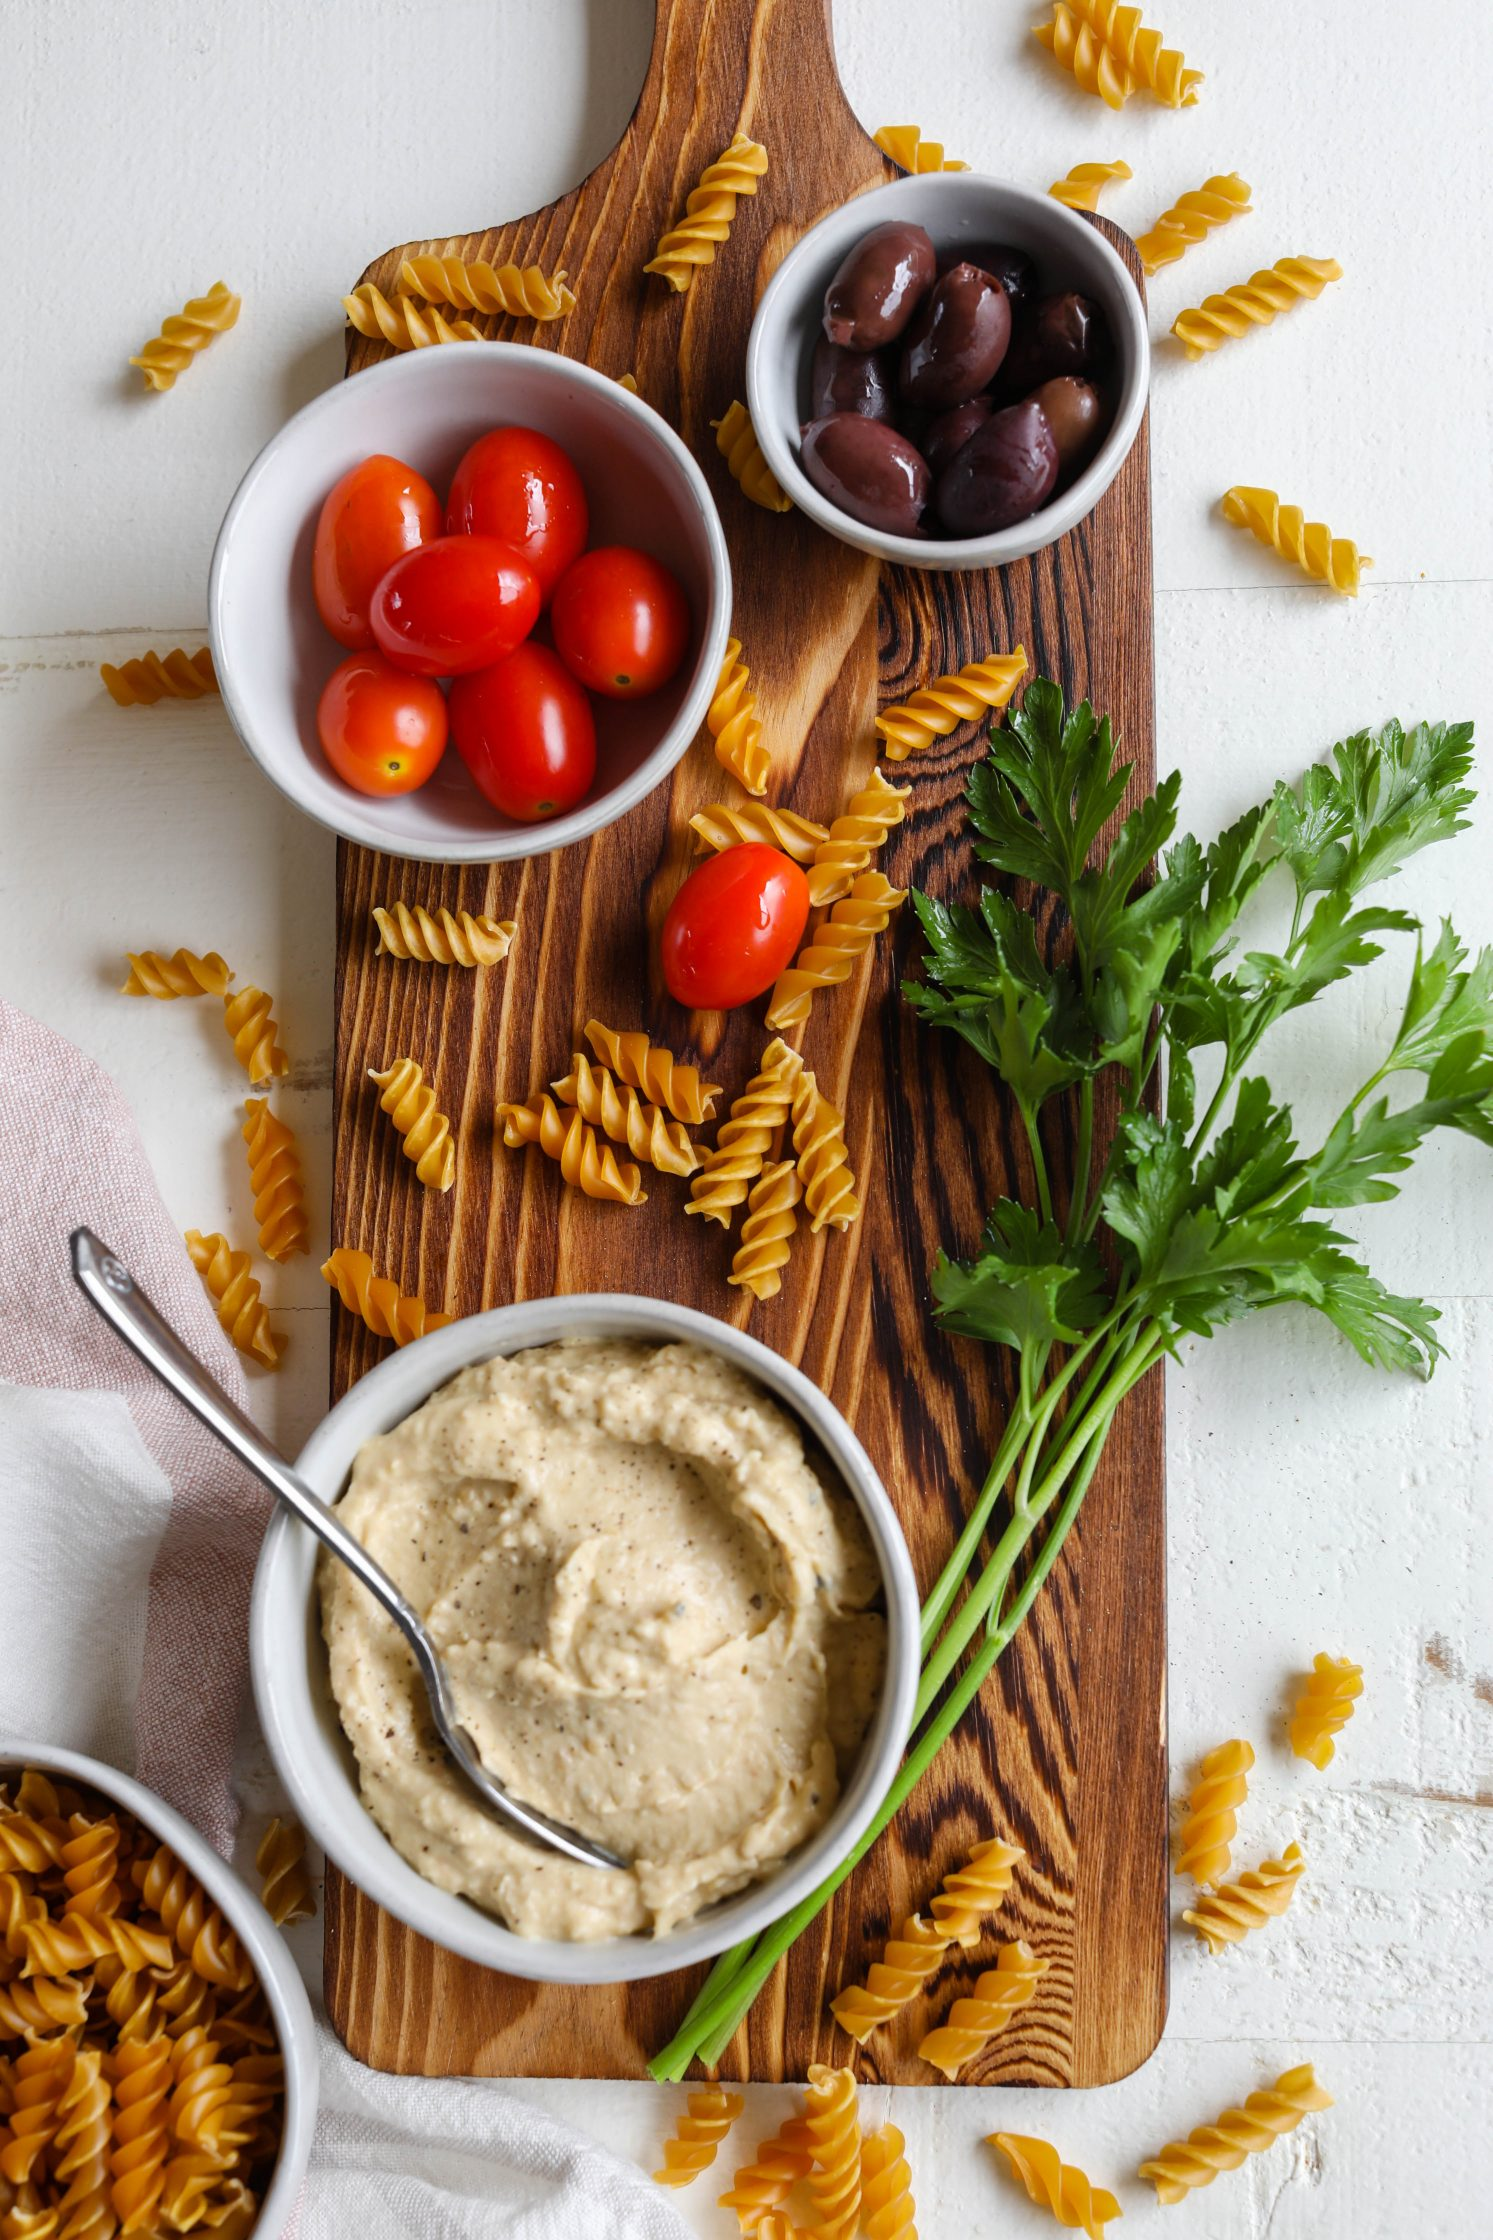 1-Bowl Hummus Pasta Salad Ingredients